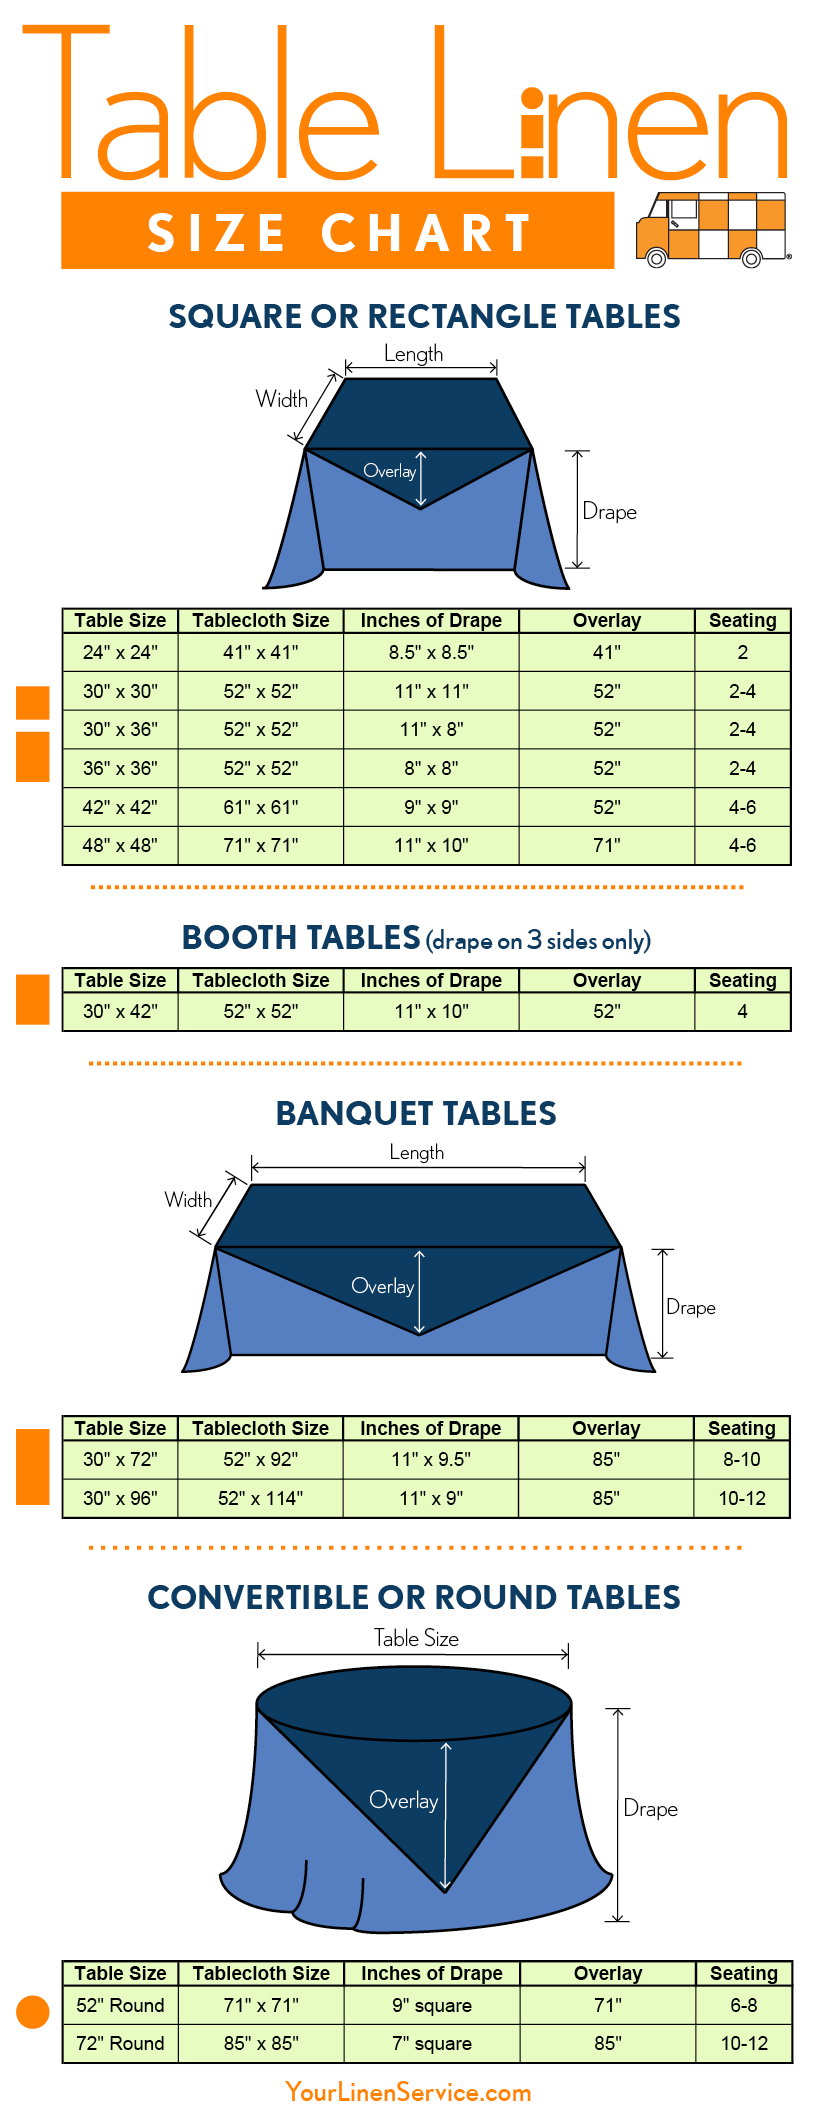 Sweetheart Table Linen Size | www.microfinanceindia.org